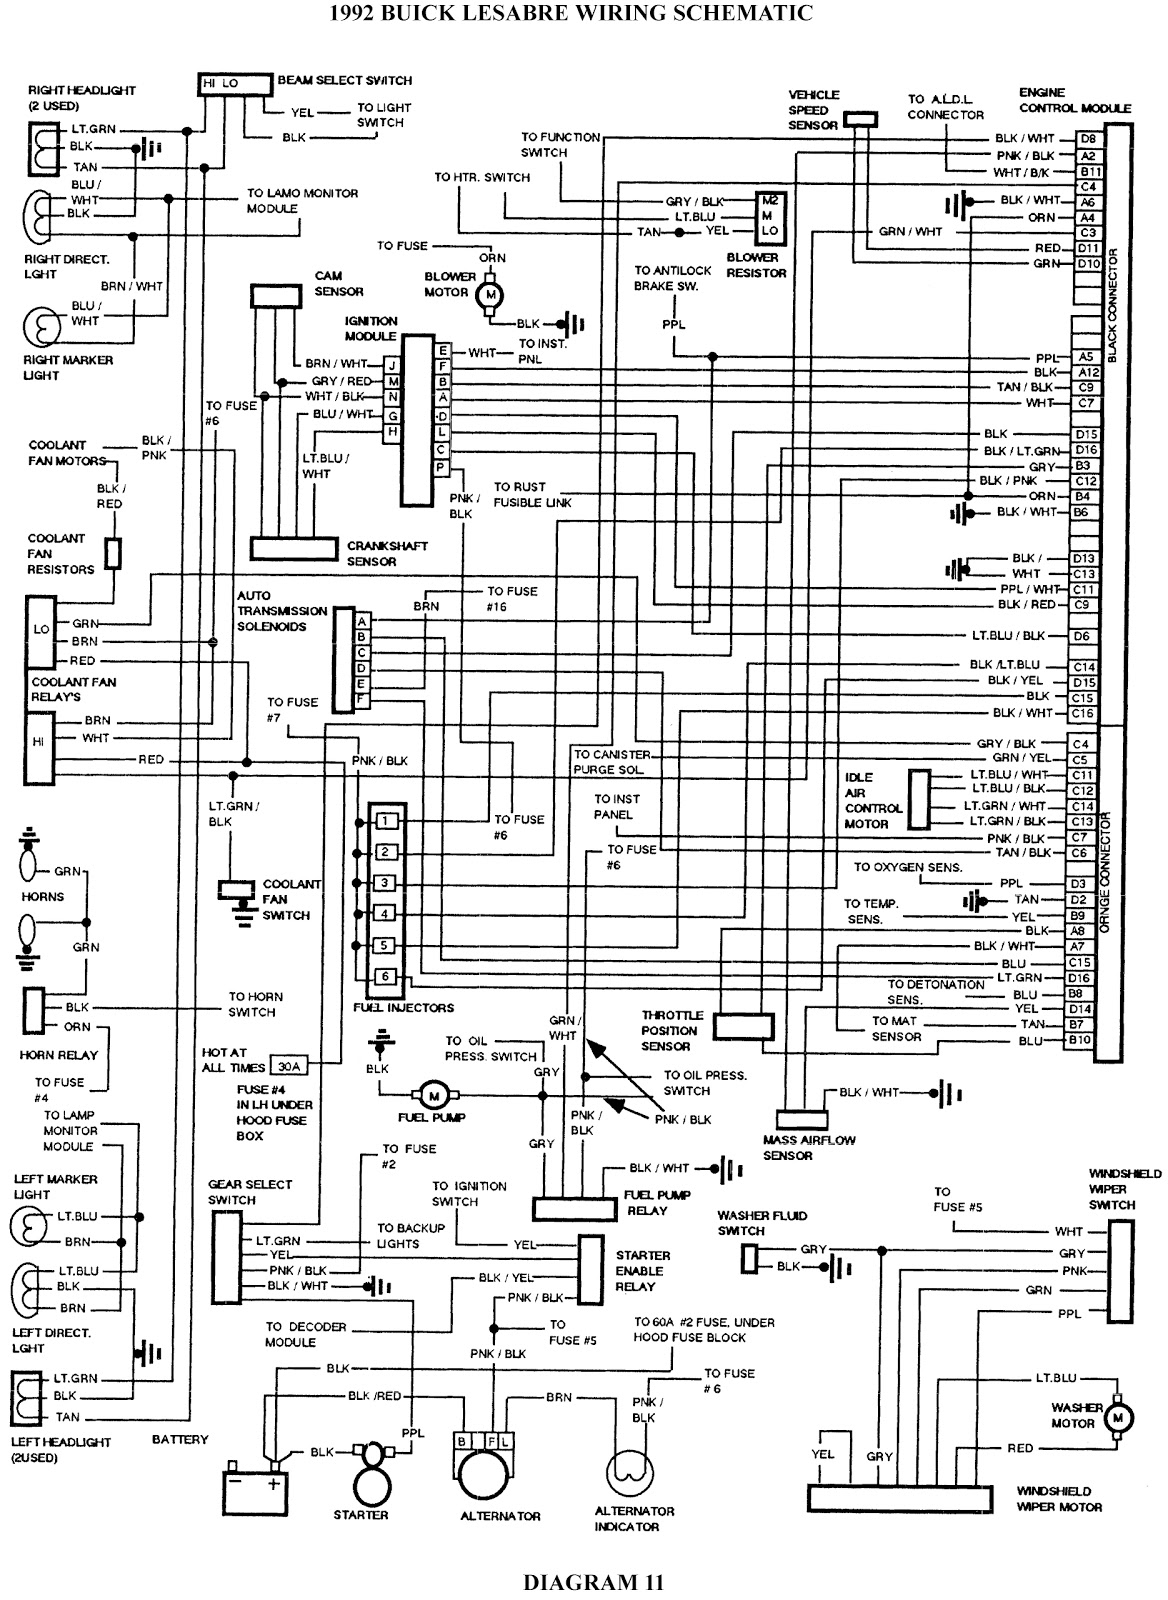 wiring diagrams for 1996 buick riviera | state-colorful wiring diagram data  | state-colorful.viaggionelmisteriosoegitto.it  viaggionelmisteriosoegitto.it